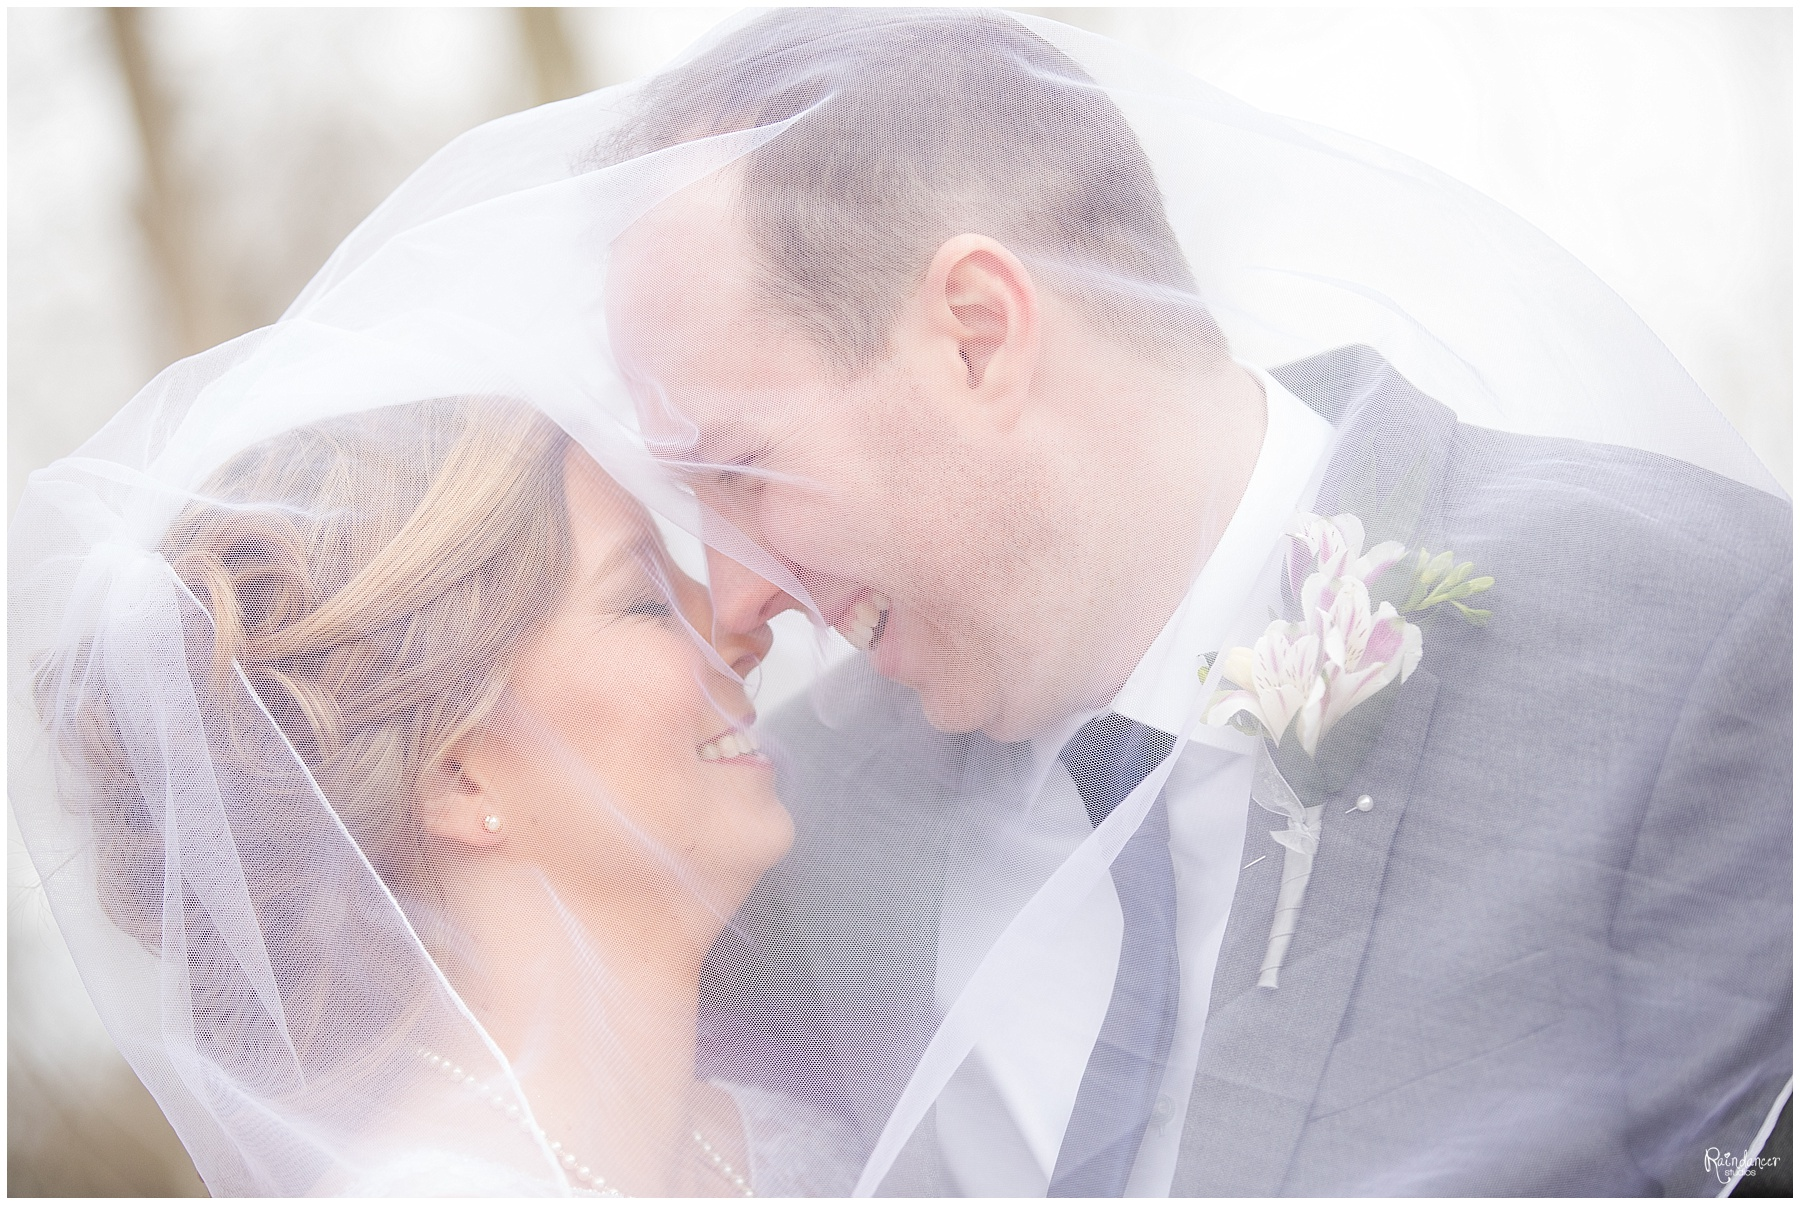 Bride and groom hugging and smiling under veil by Raindancer Studios Indianapolis Wedding photographer Jill Howell